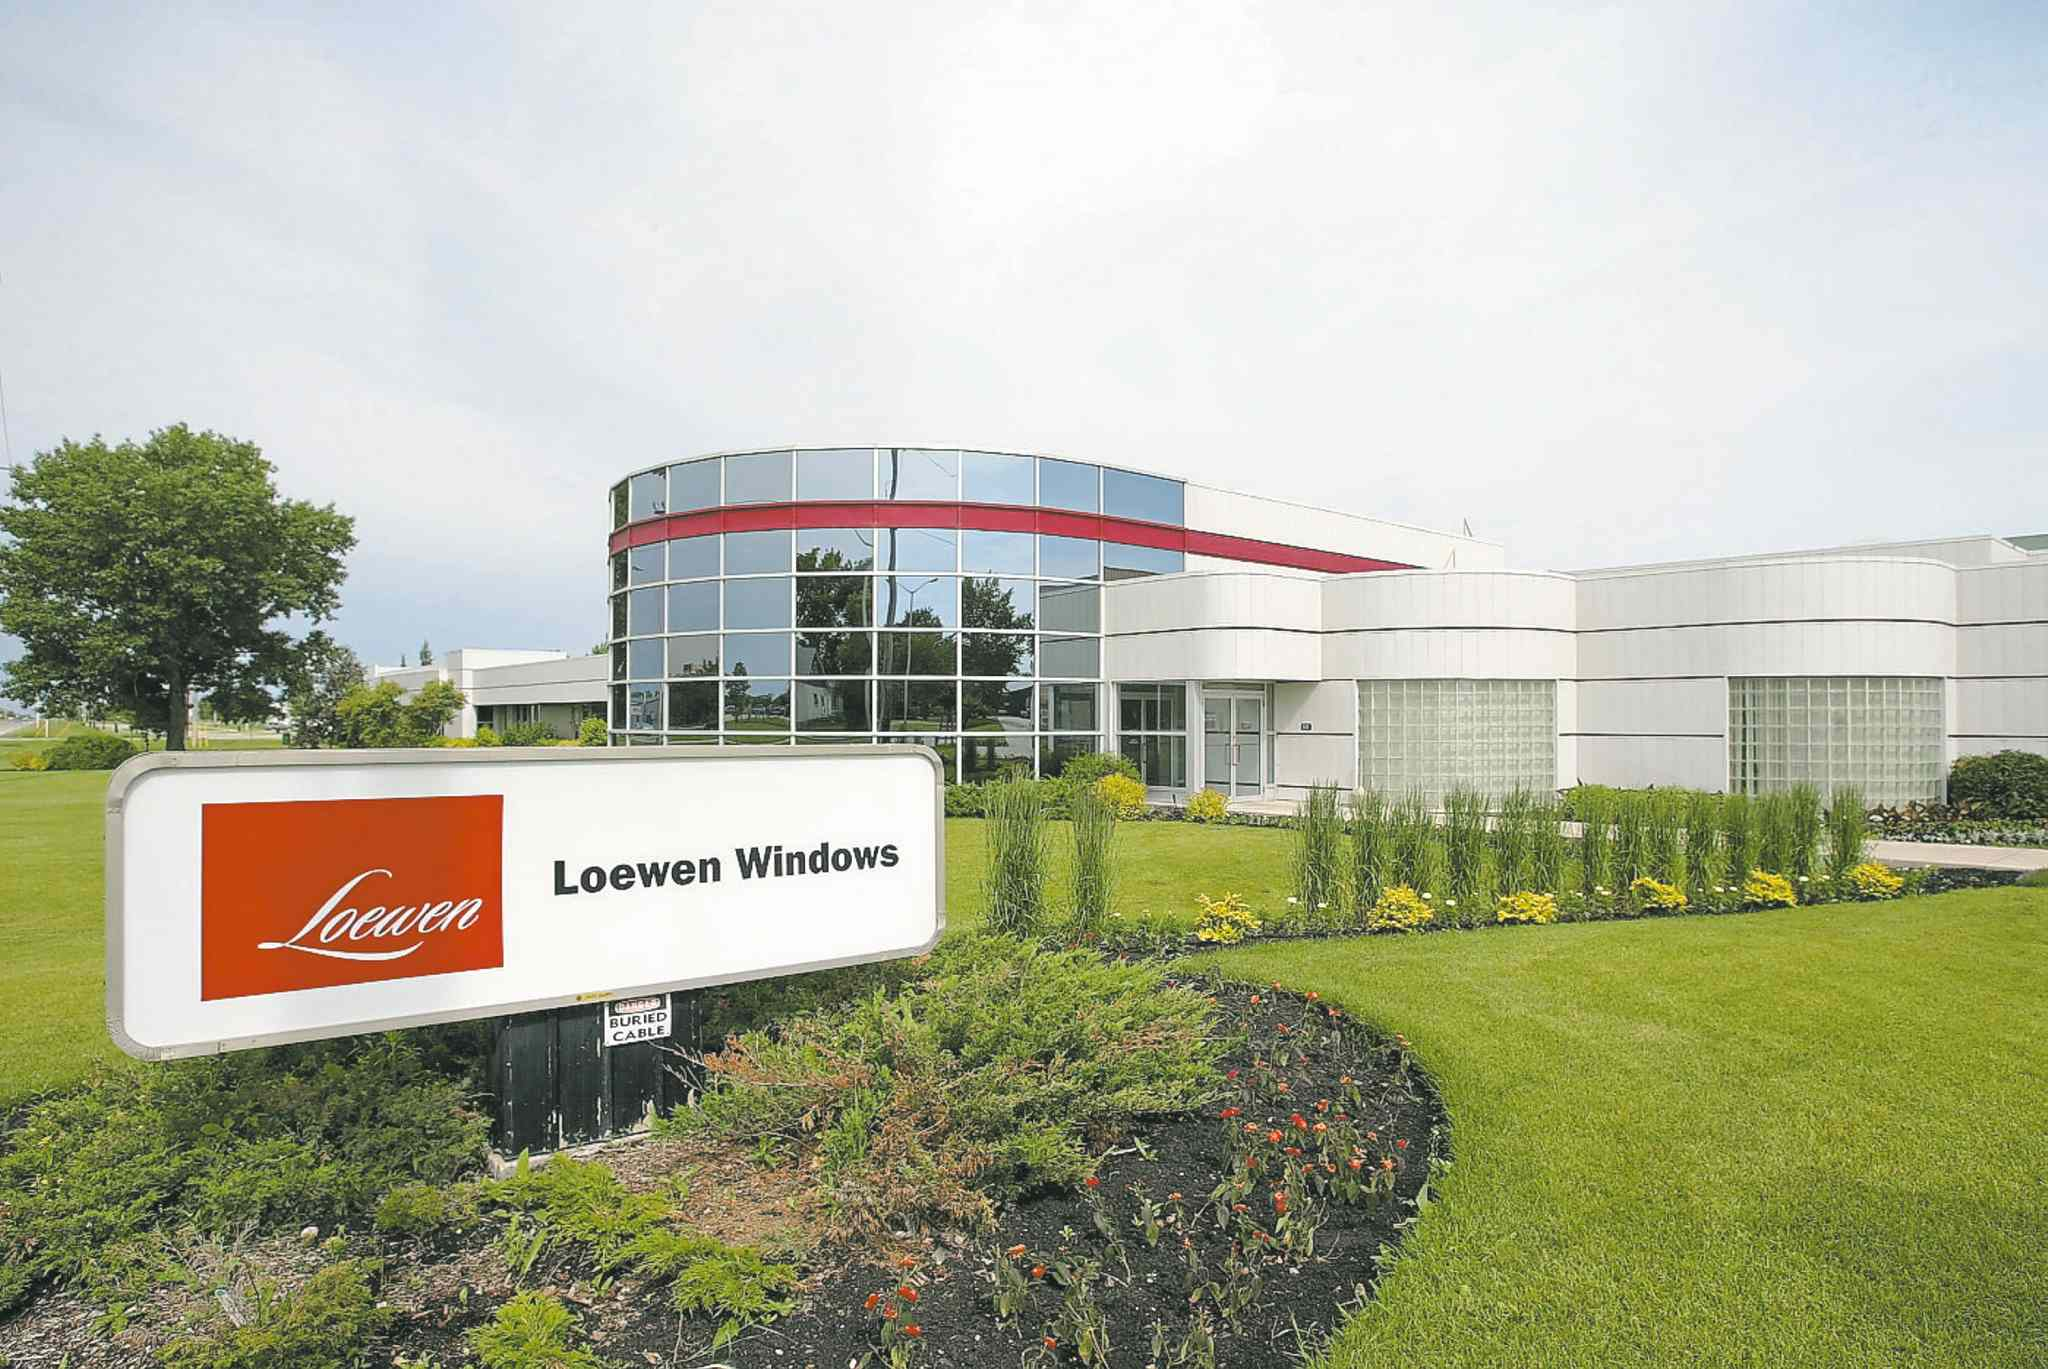 Manufacturer Loewen Windows is one of the Steinbach area\u0027s largest employers. & Window of opportunity at Steinbach company - Winnipeg Free Press